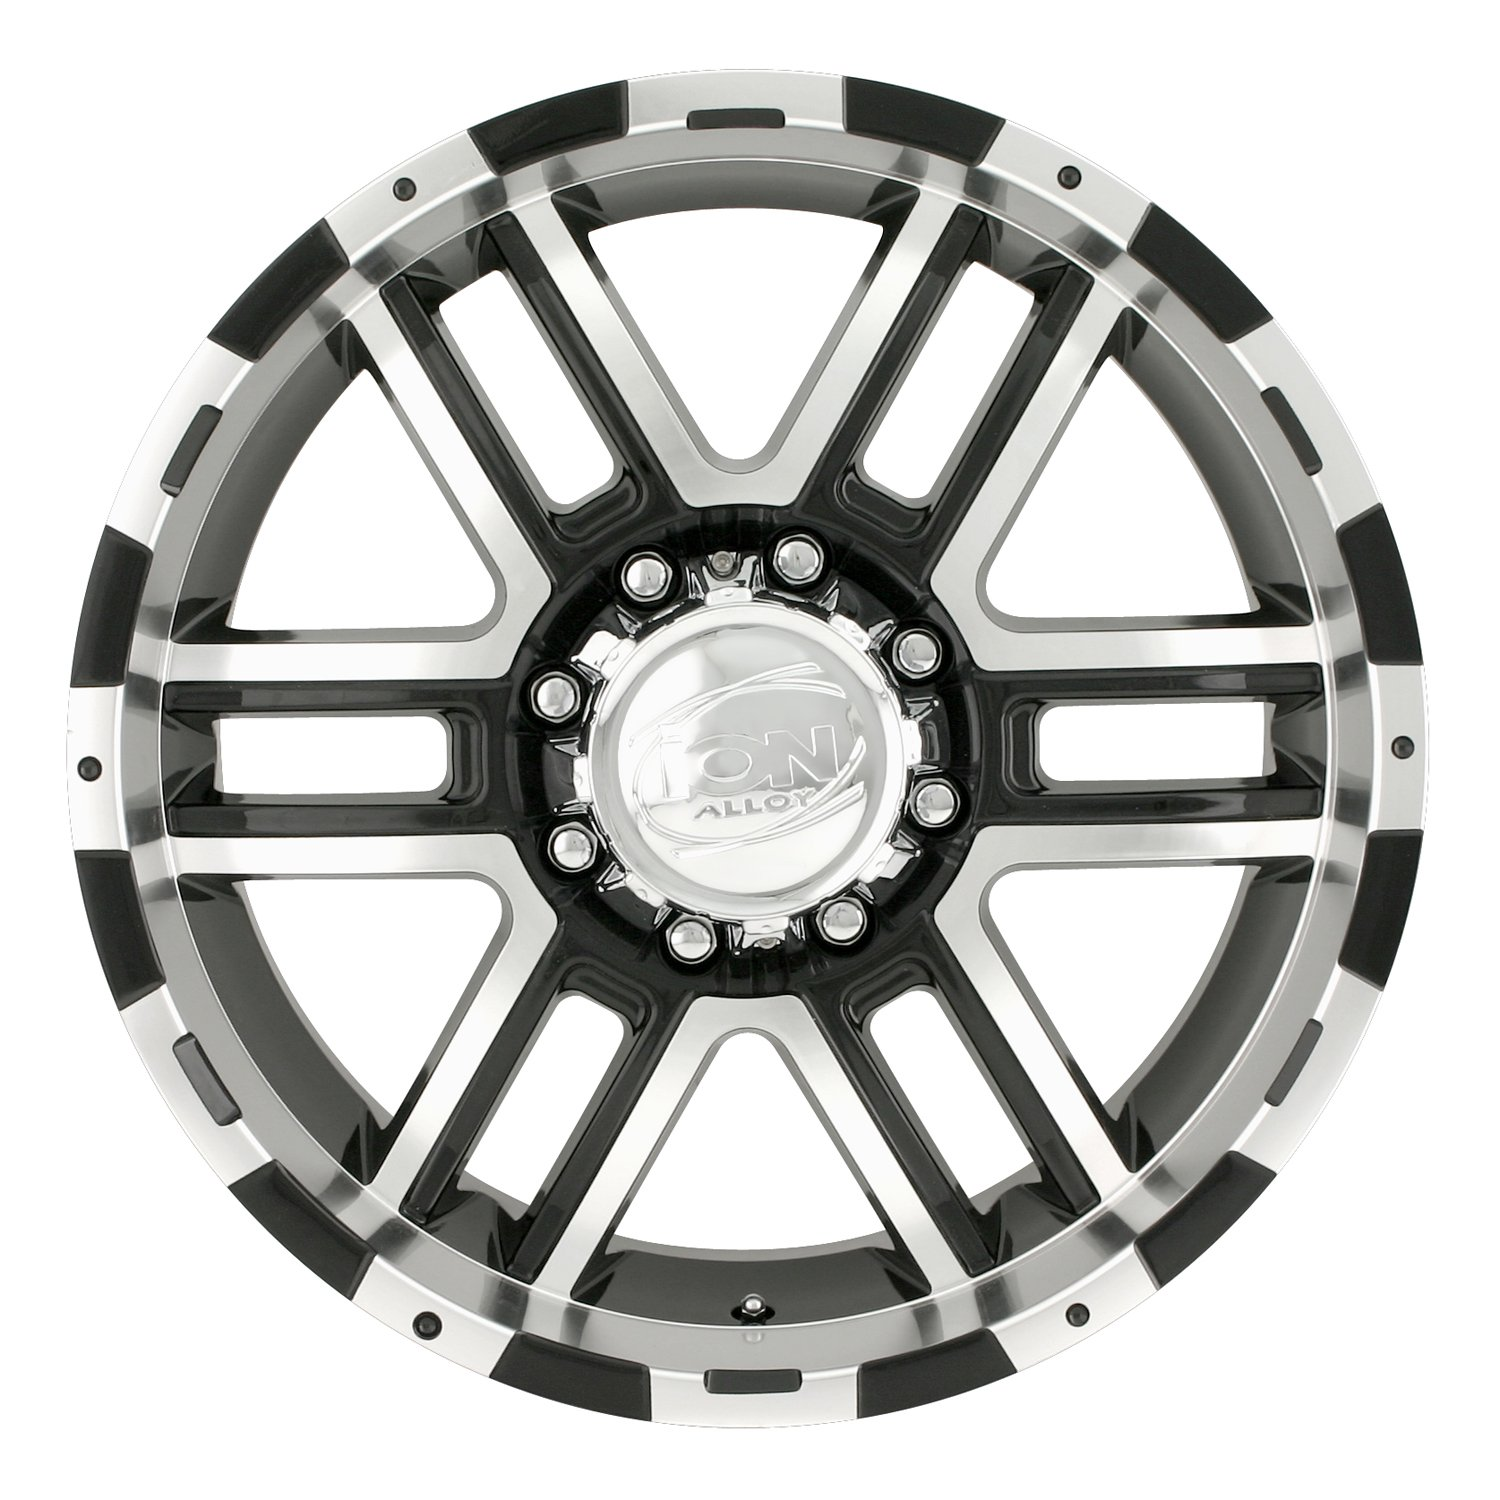 Ion Alloy 179 Black Wheel with Machined Face and Lip (18x9''/8x170mm)